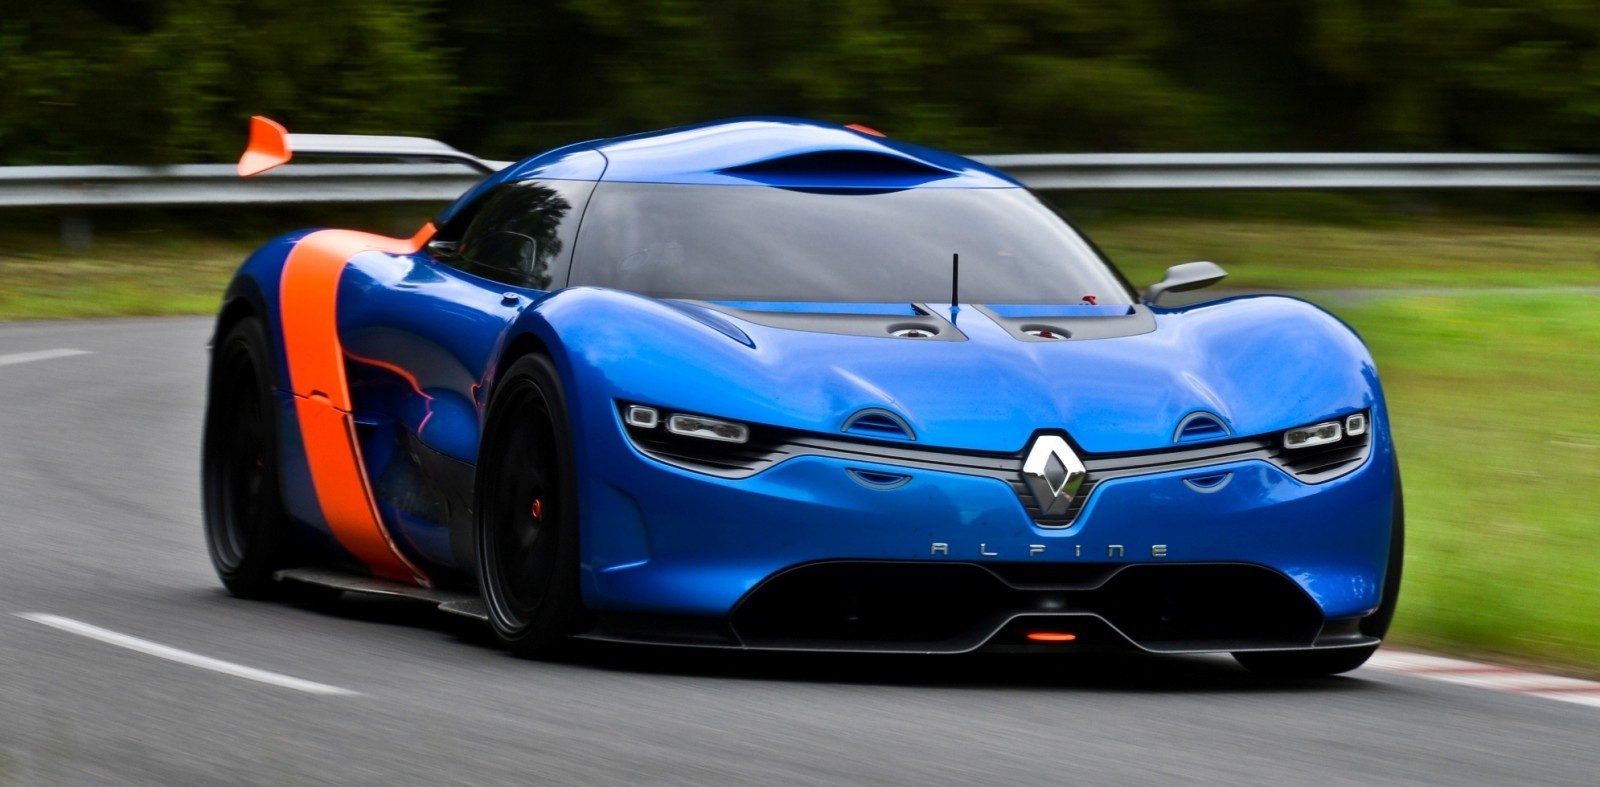 Concept Flashback - 2012 Renault Alpine A110-50 A Blend of M64 and A110 Berlinette 58